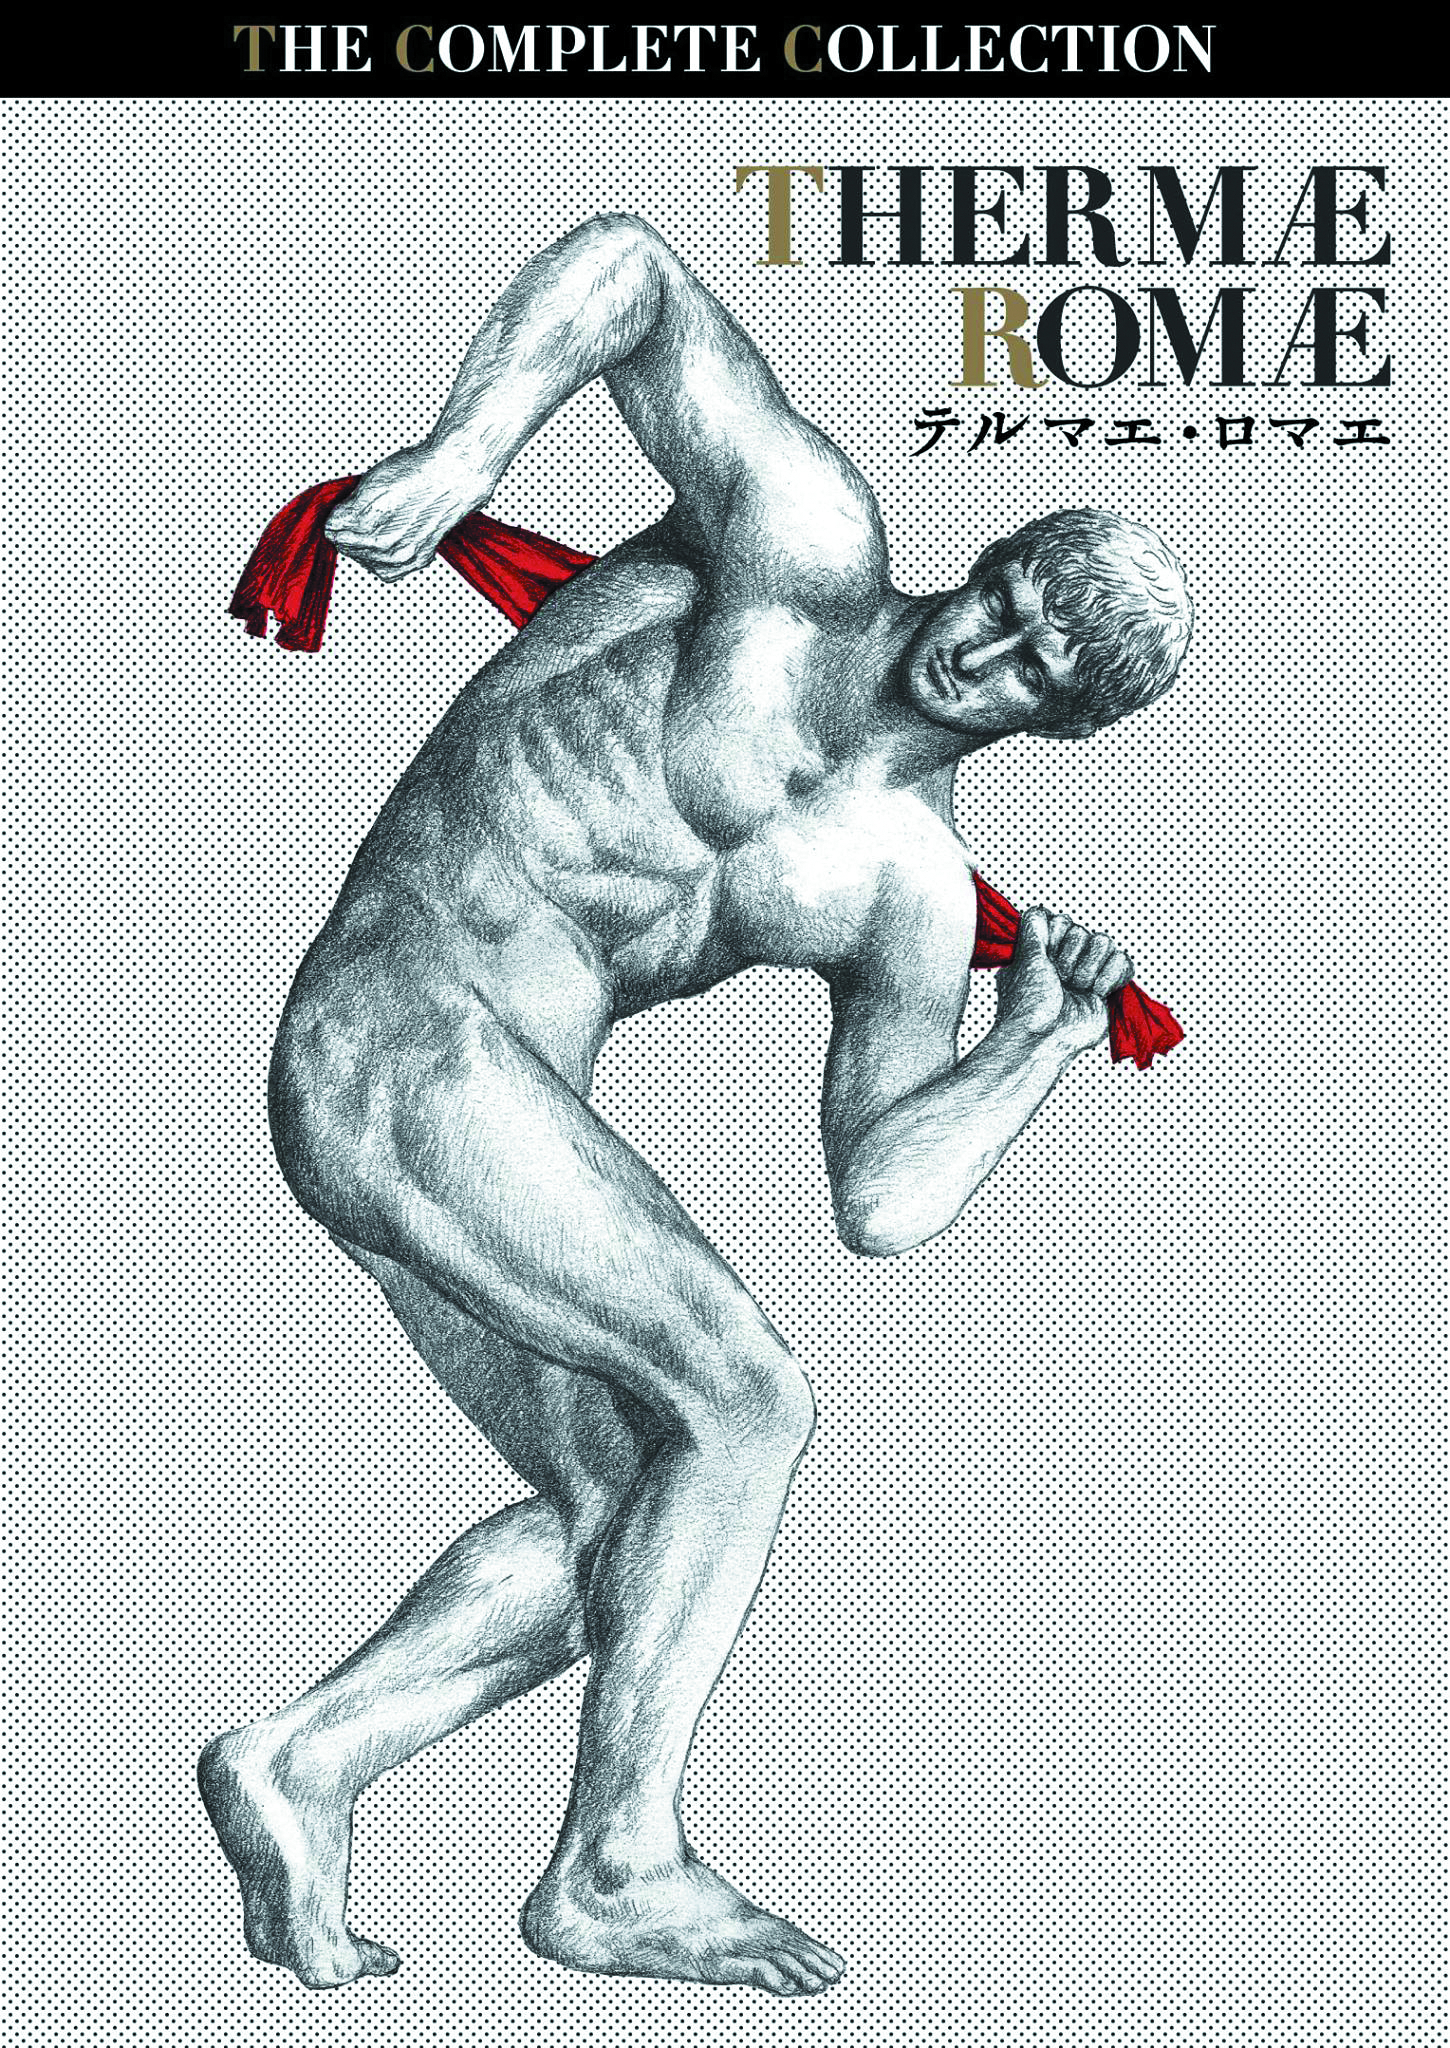 THERMAE ROMAE COMP COLL DVD